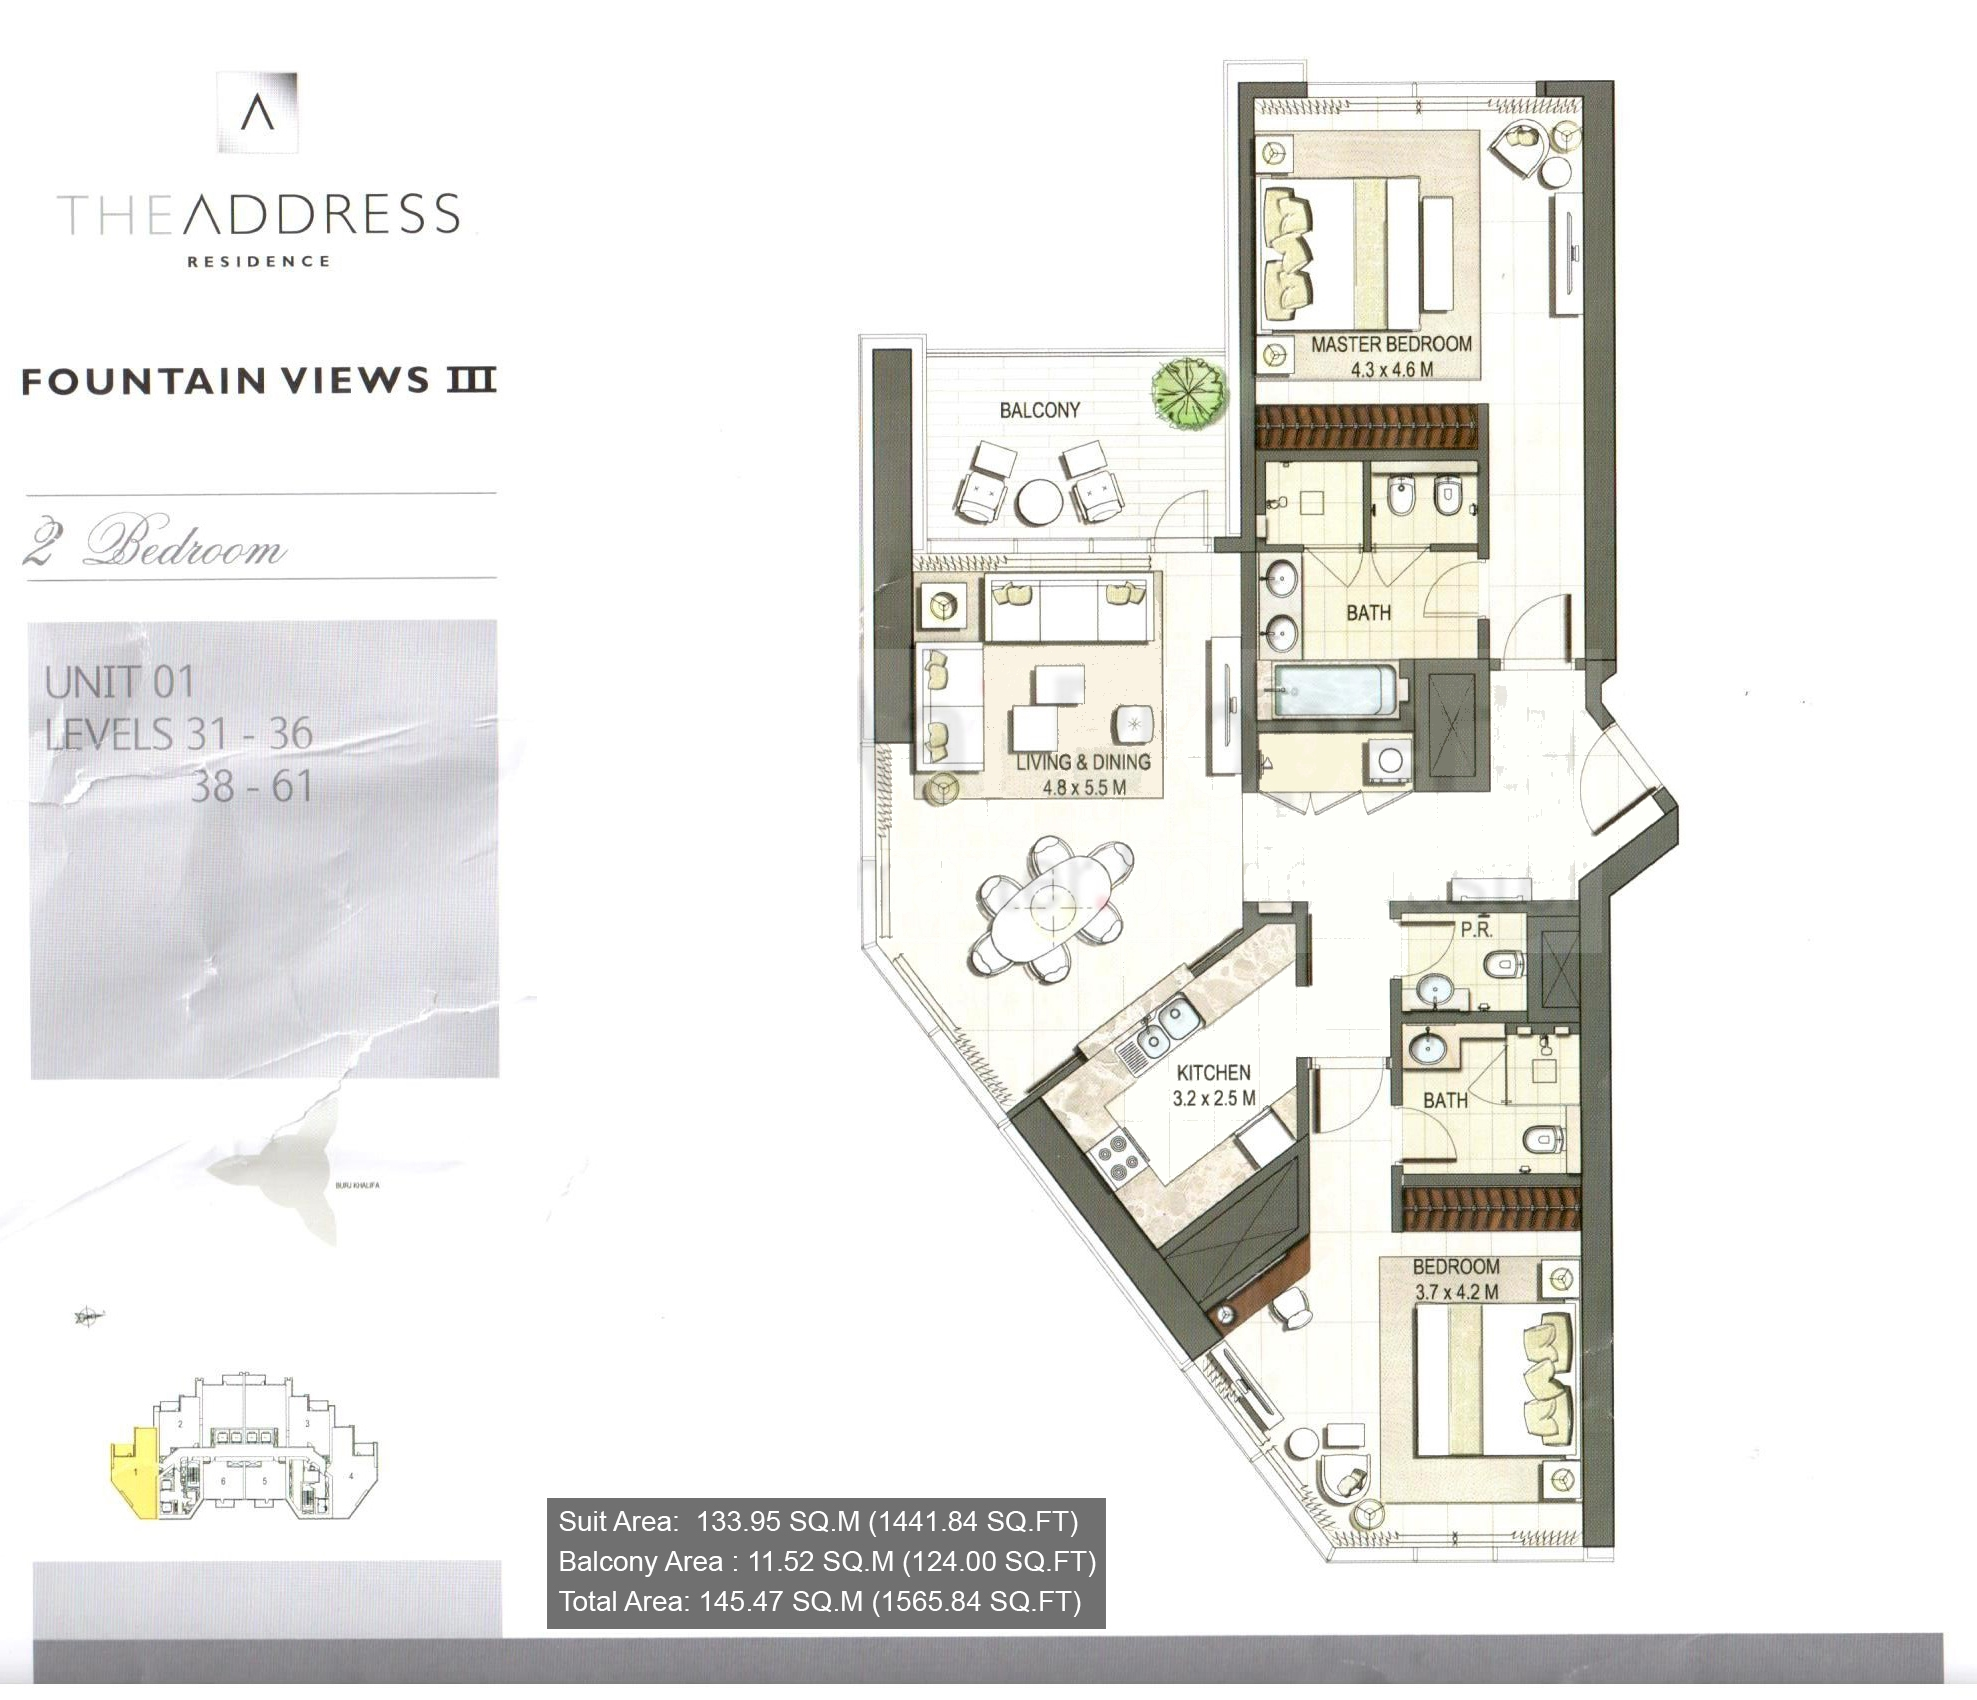 House floor plan by address 28 images top 28 find for Find floor plans by address